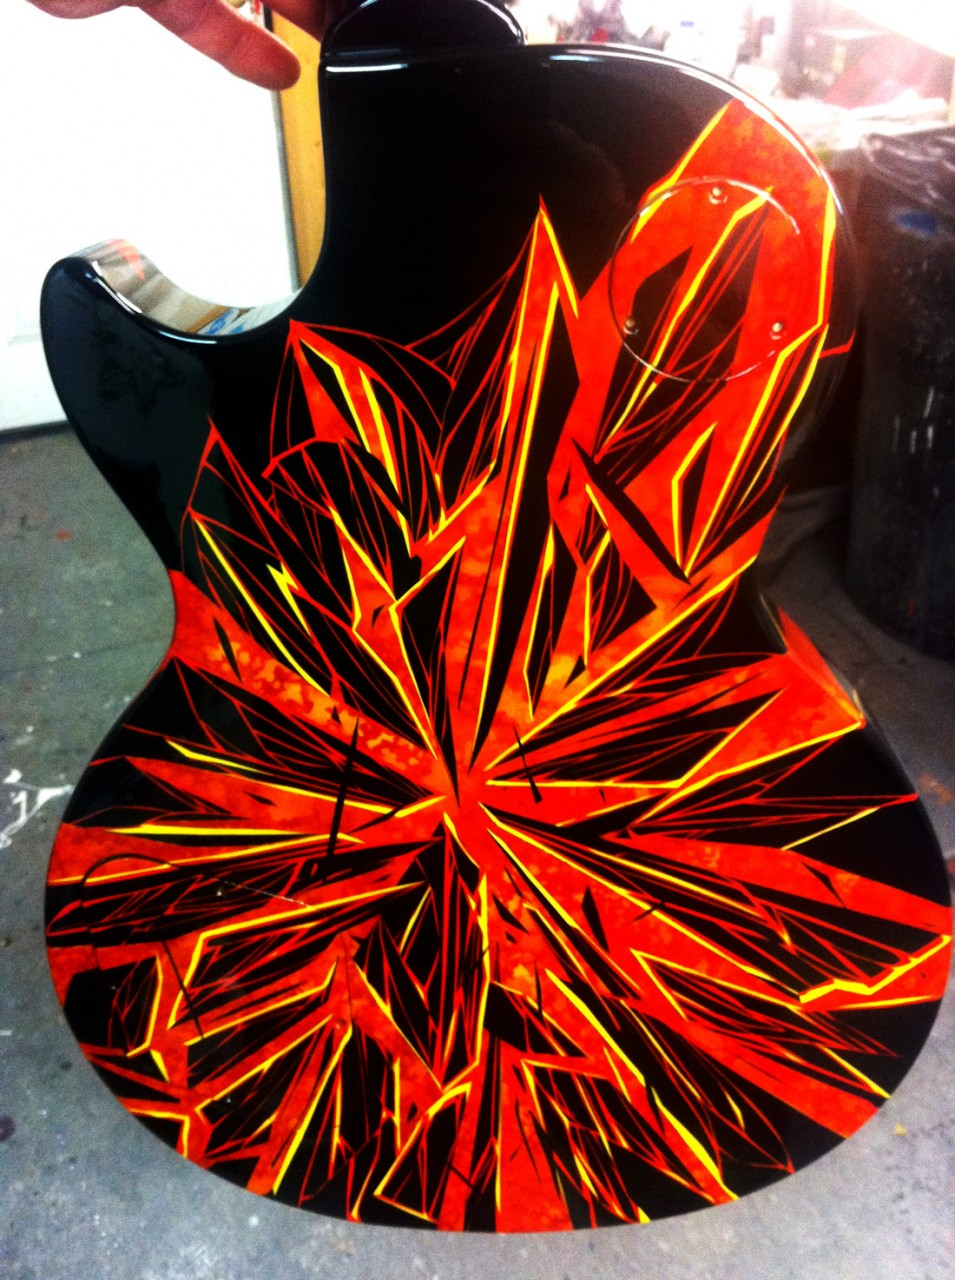 custom-painted-guitar-broken-glass-airbrush